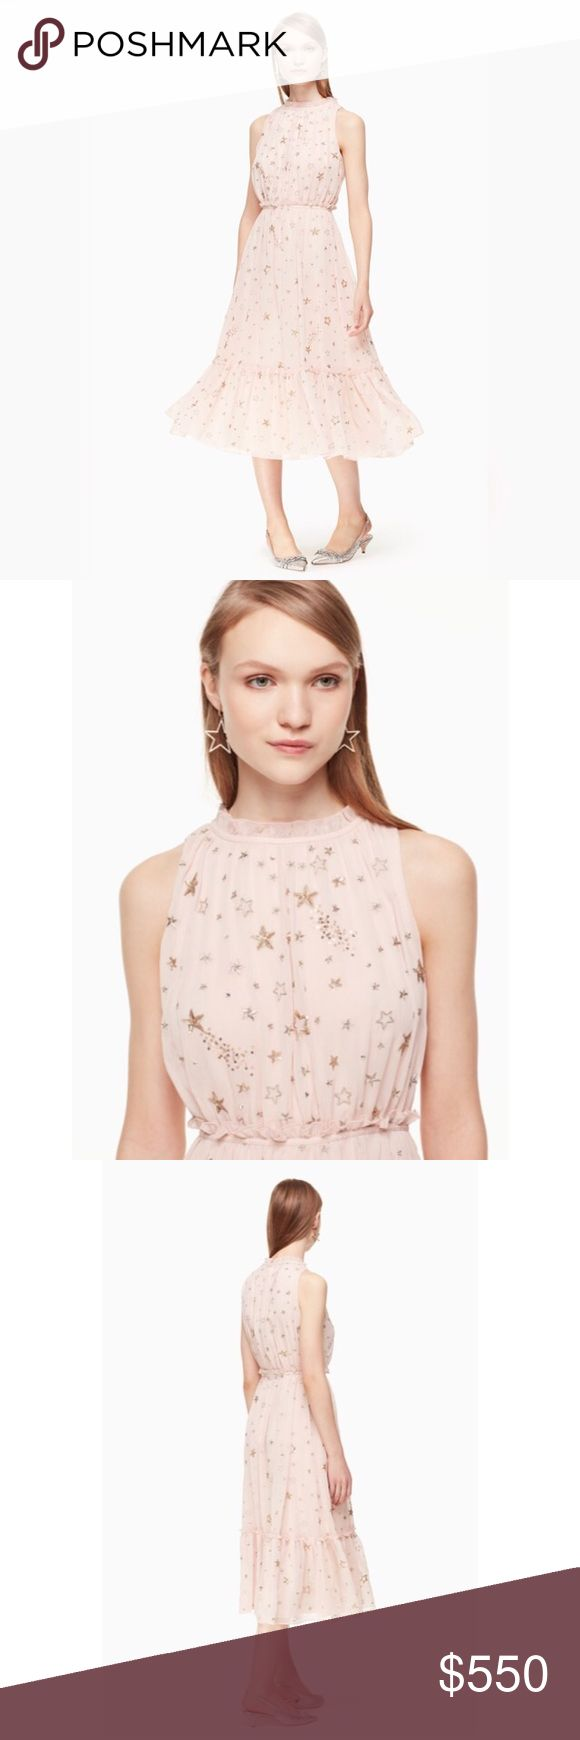 Kate Spade Madison Ave Amada Dress NWT Sz. 14 Kate Spade Madison Ave Amada Dress Size 14 NWT Color: Rose Dew  Retail $698  Please Remember Poshmark takes 20% of the price I have listed (you pay) I receive the rest. We make nothing off of shipping. Posh sets that rate!  *Please Note: Picture on the mannequin is not very flattering since the mannequin is so small, and this is a Size 14 dress. I have pulled it back several inches on the mannequin or it would just hang off of it.  🚨Price Is…